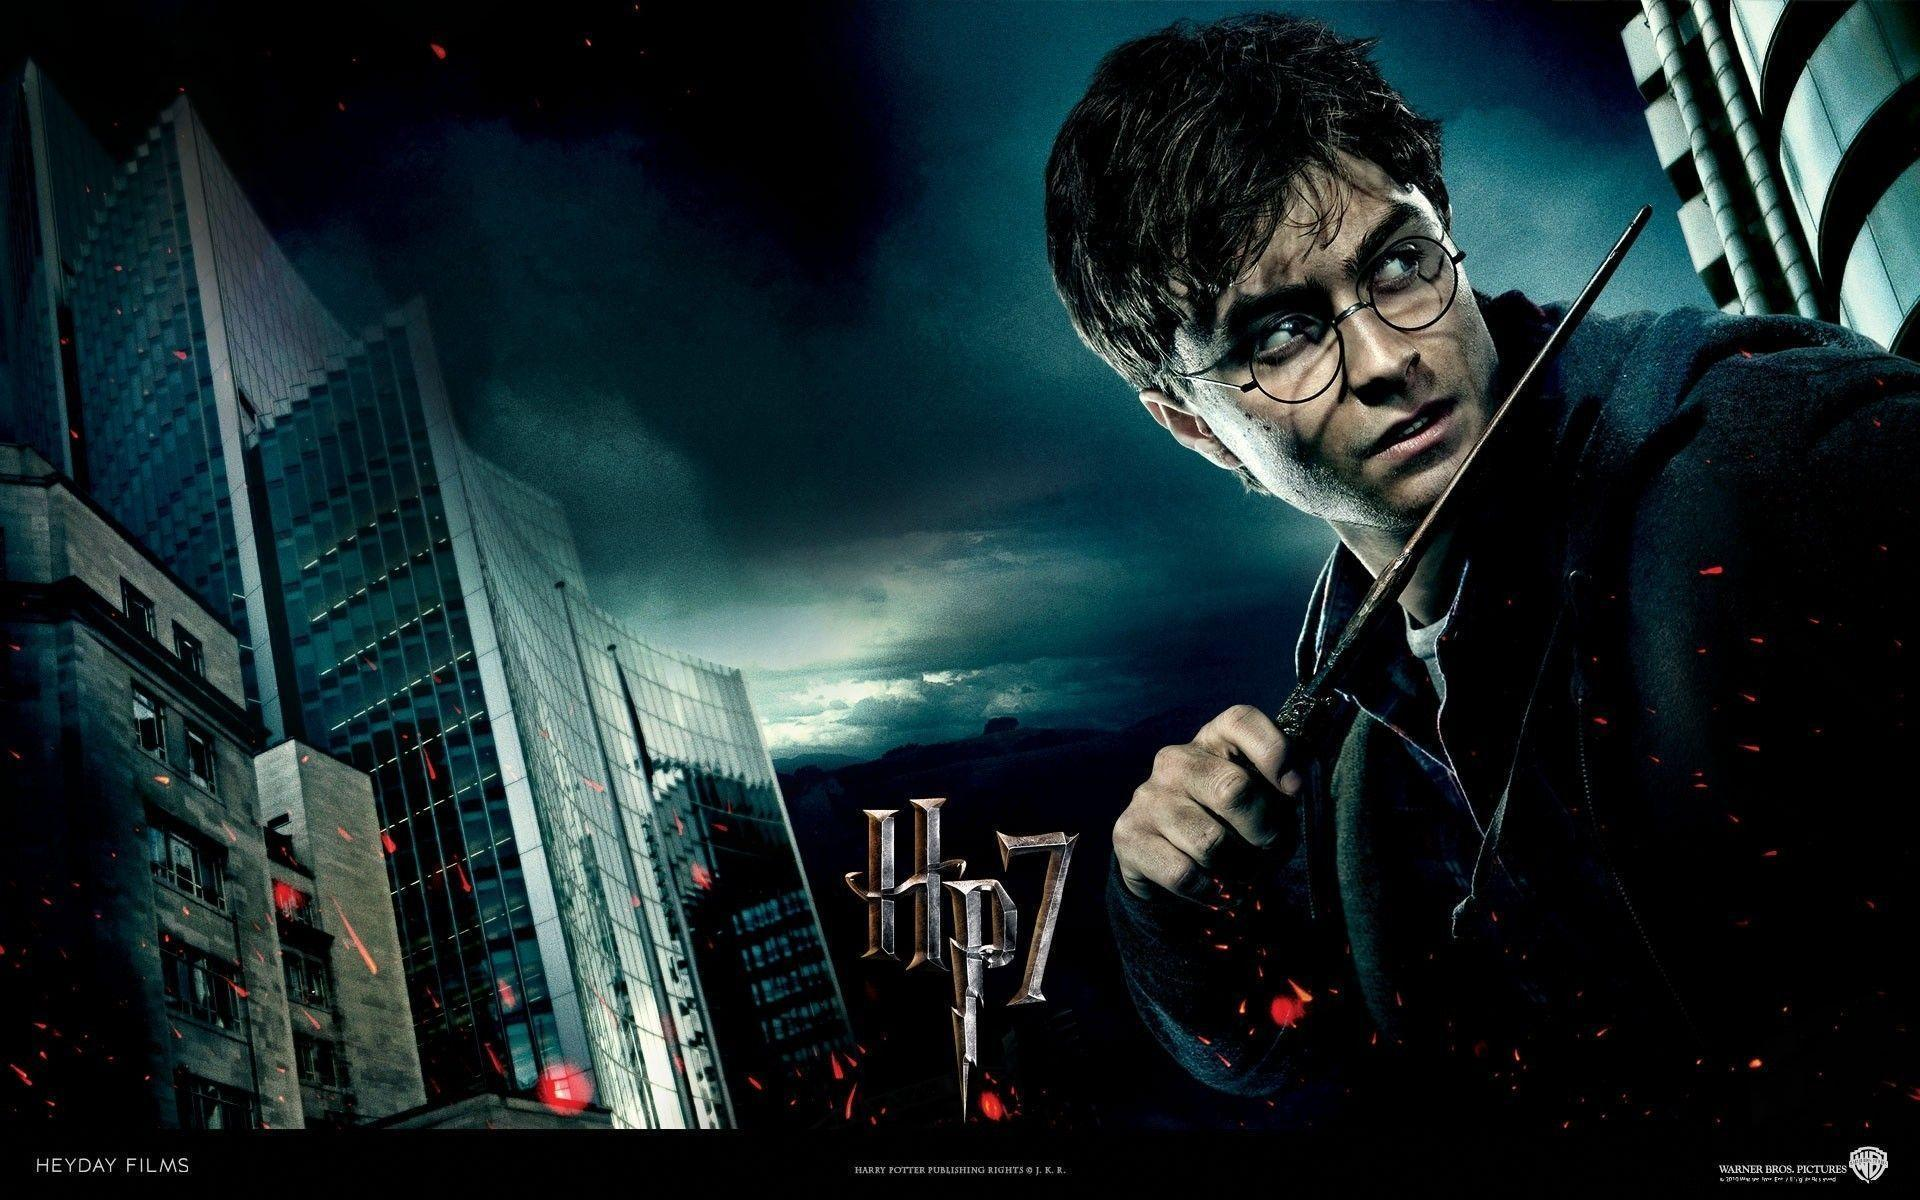 Hd wallpaper harry potter - Harry Potter Wallpapers Full Hd Wallpaper Search Page 4